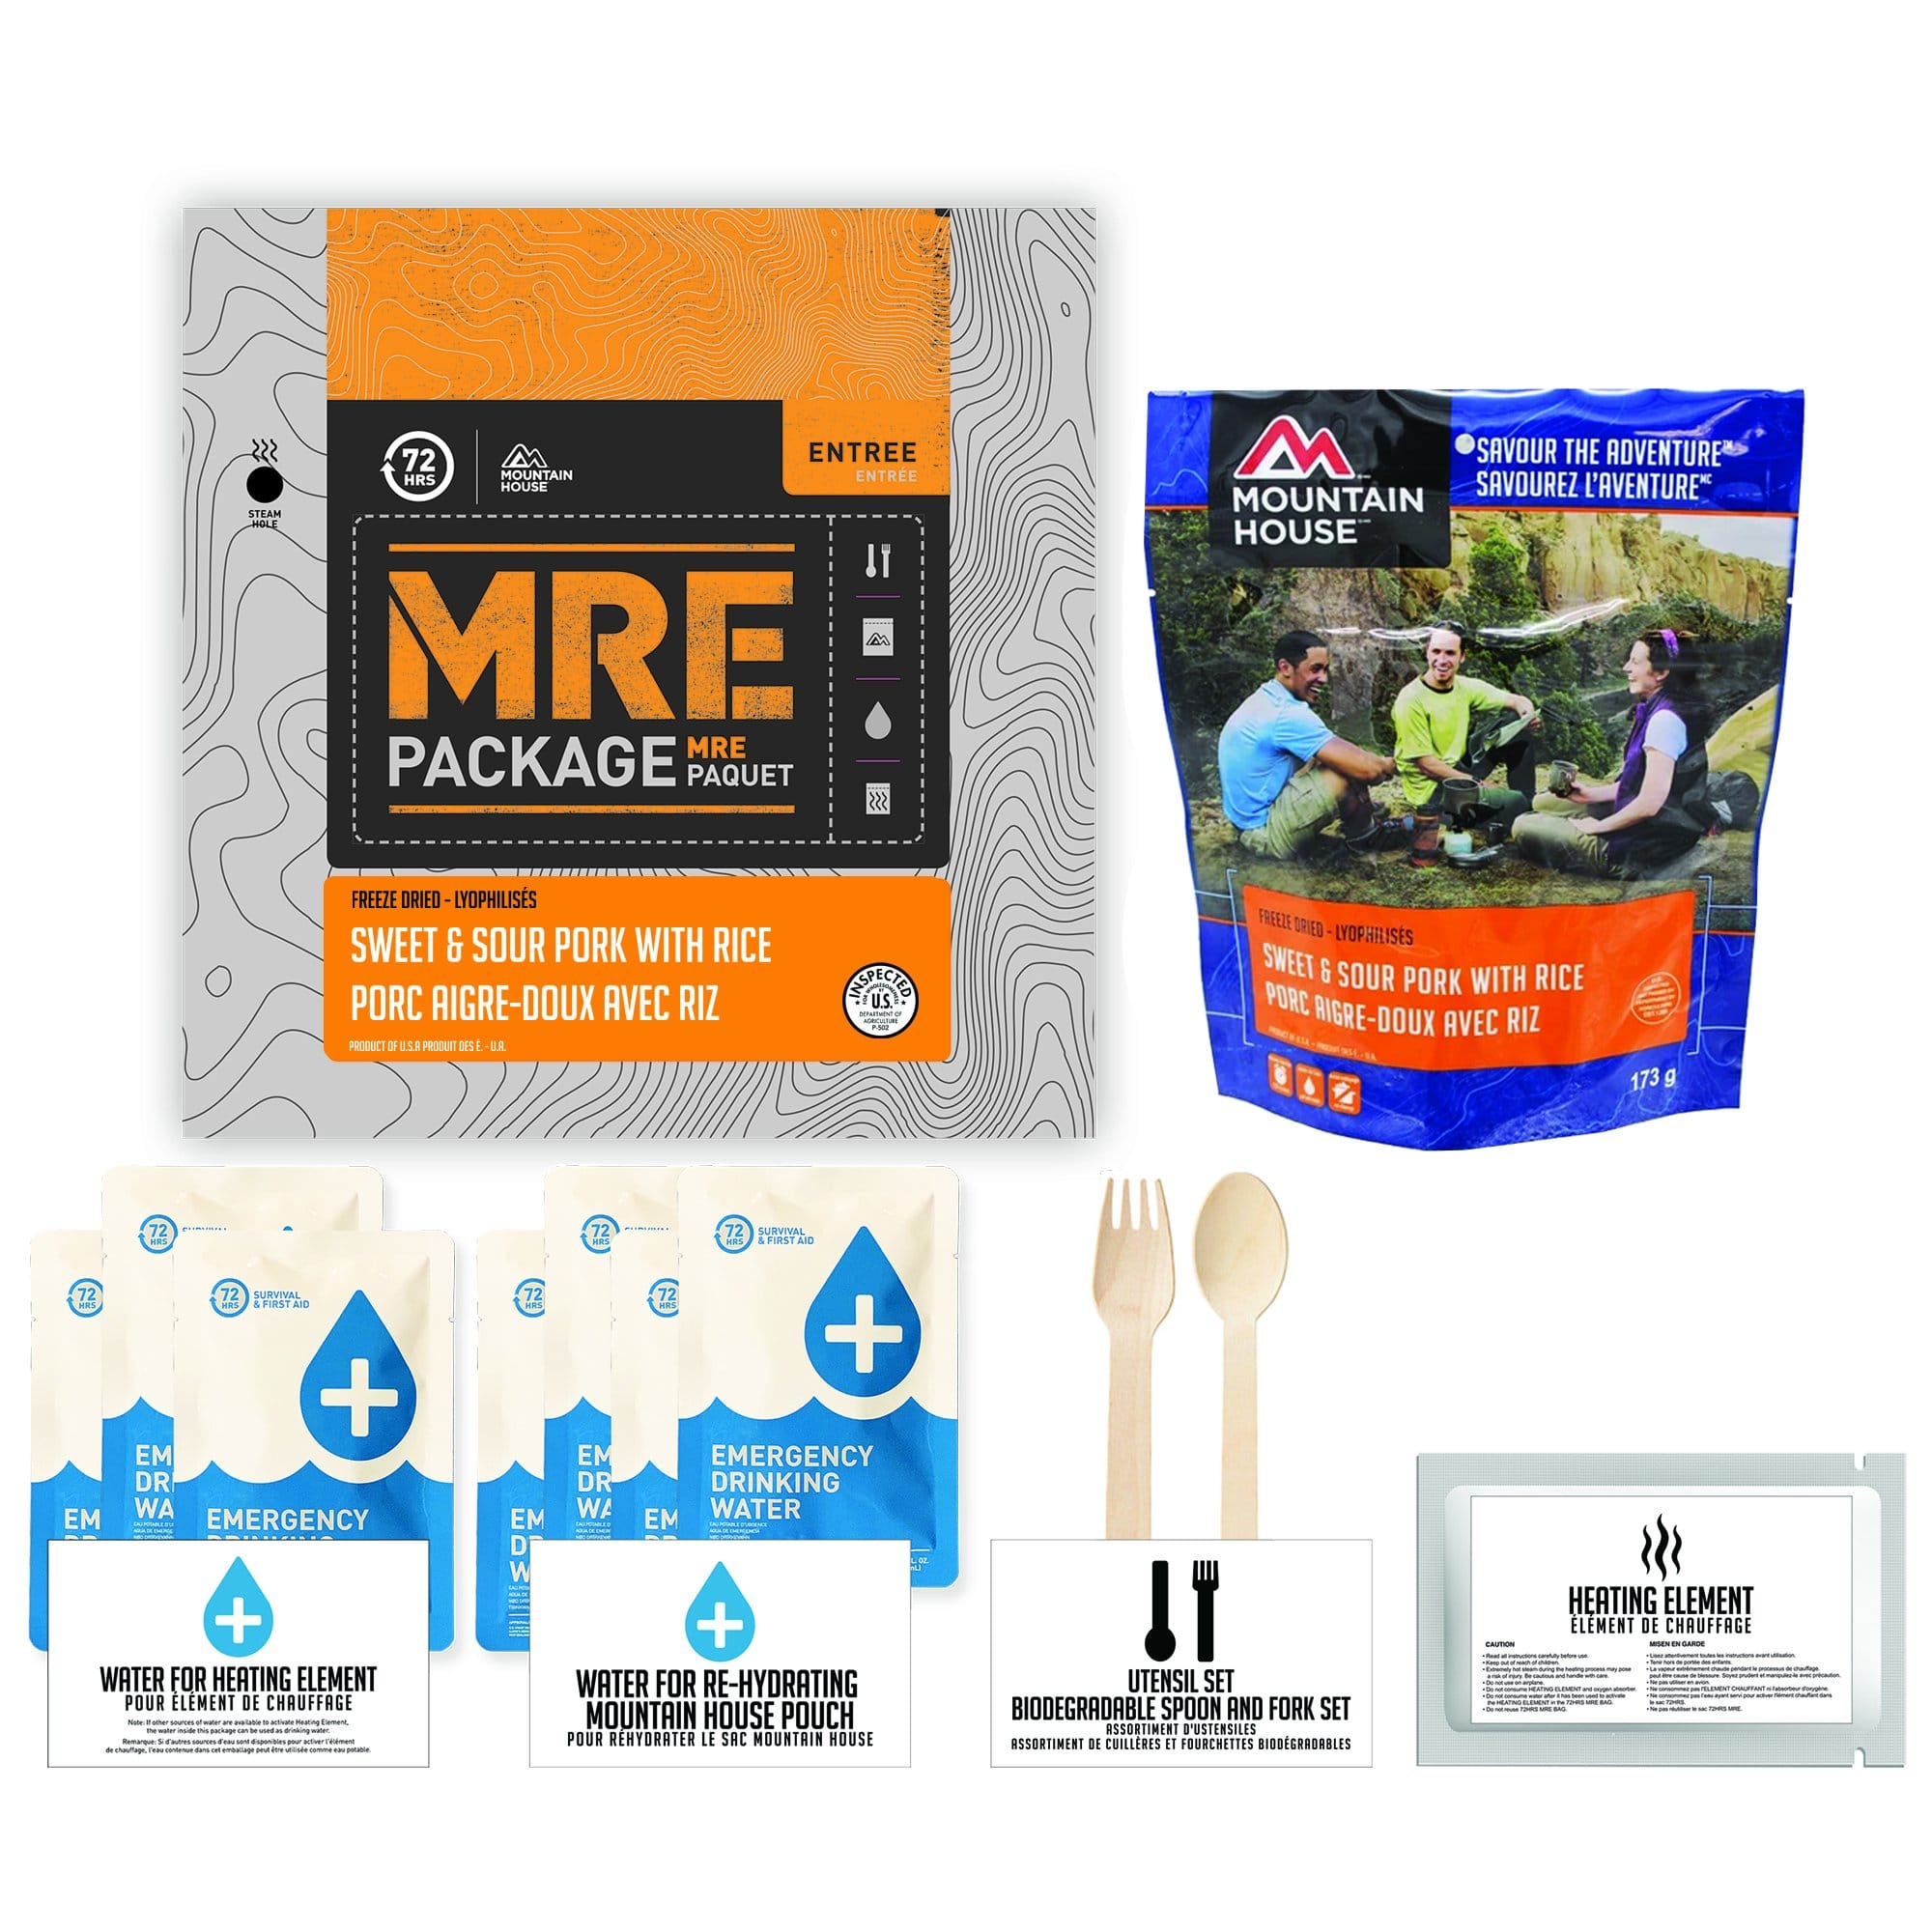 72 HOURS MRE Package Mountain House Sweet and Sour Pork Sauce Pouch - Emergency Food Pack